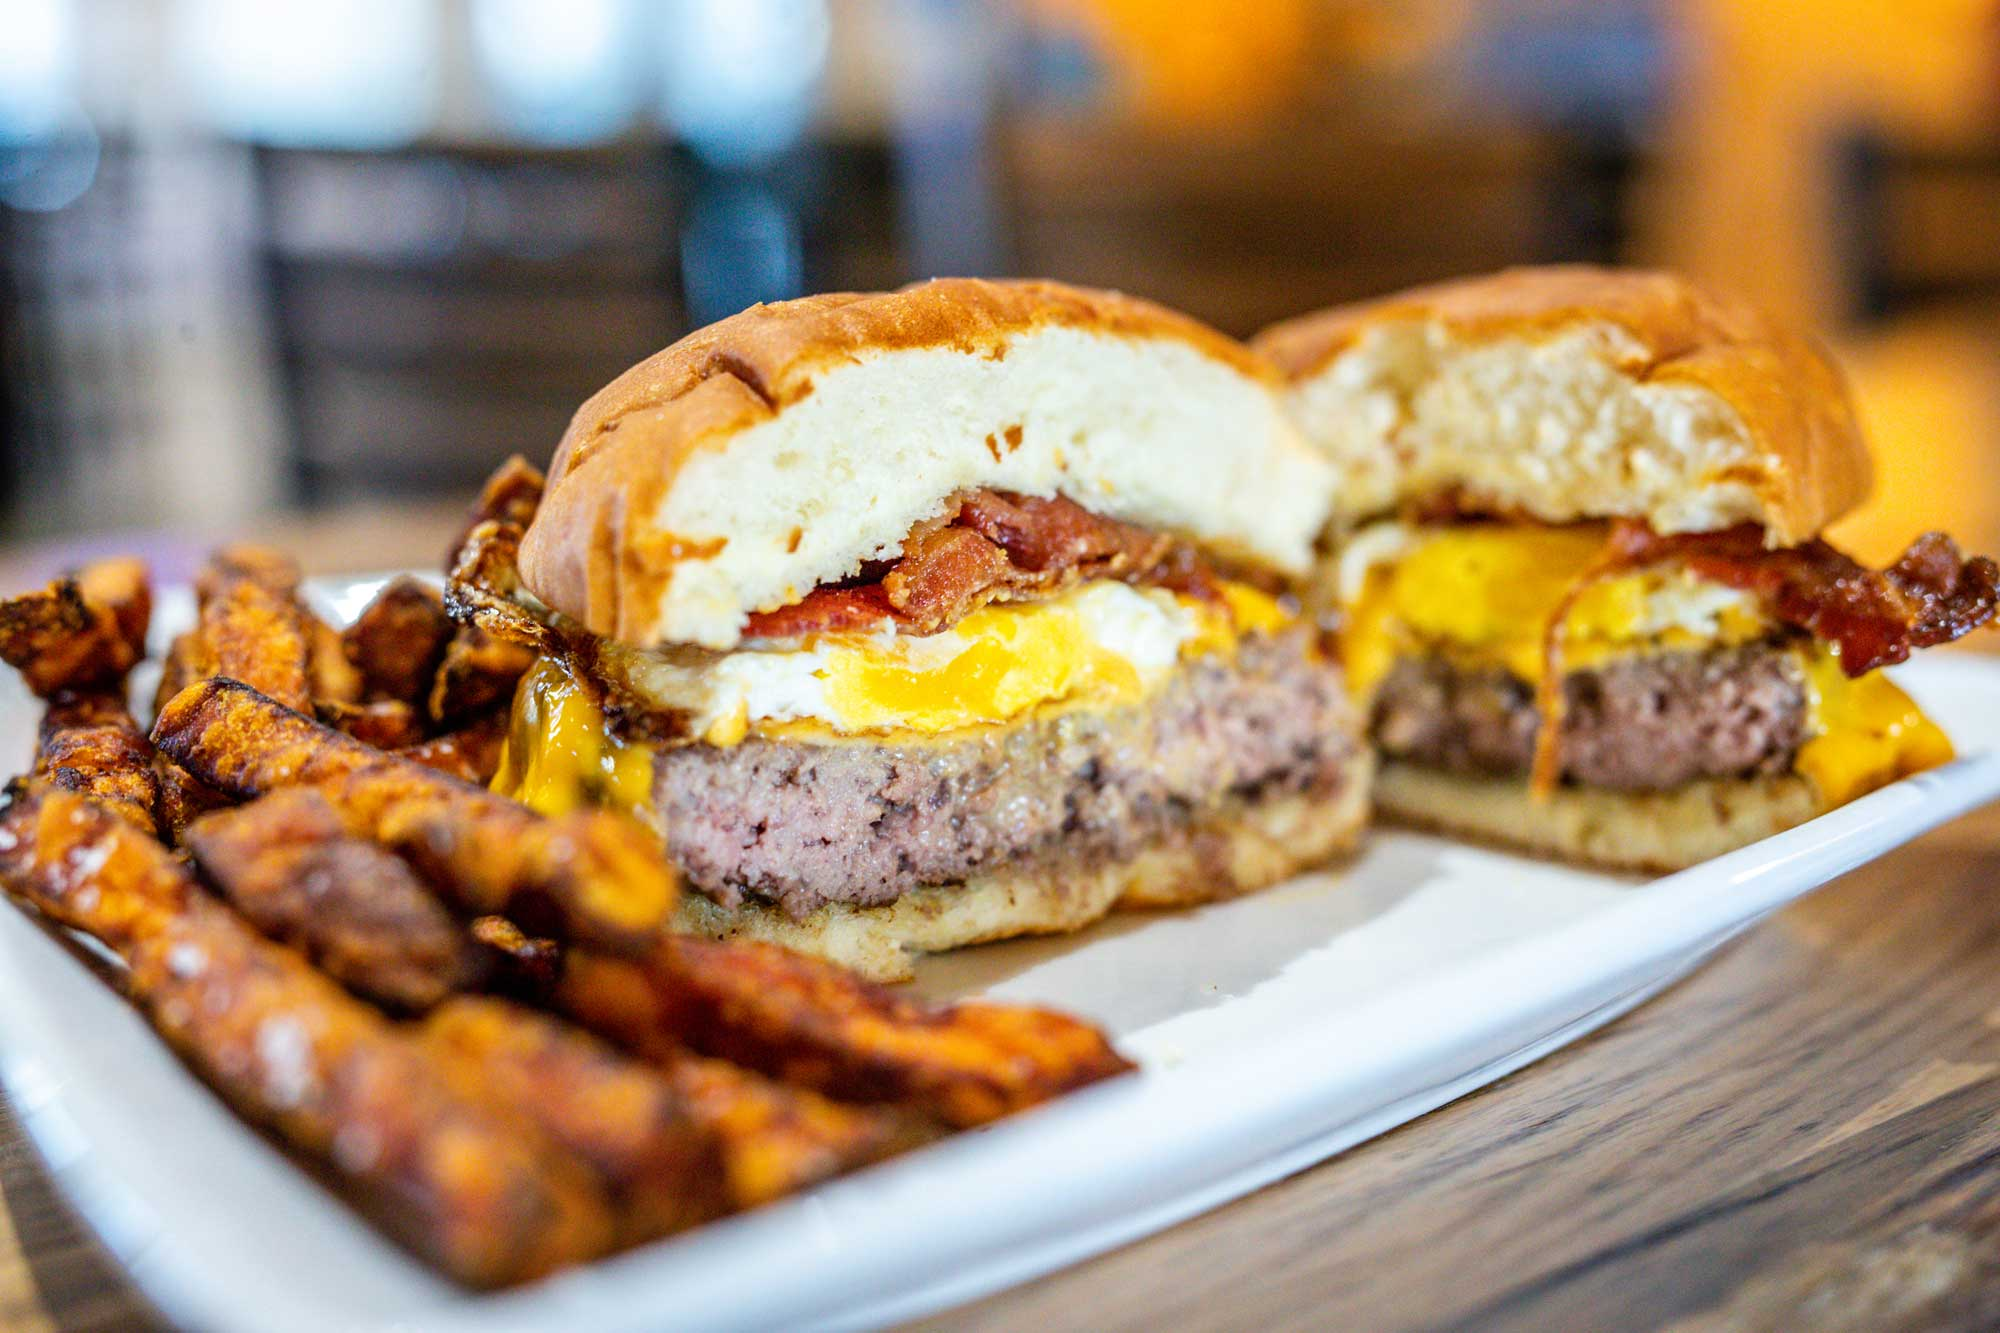 bacon cheeseburger with egg and homemade fries, dining at camden on the lake resort